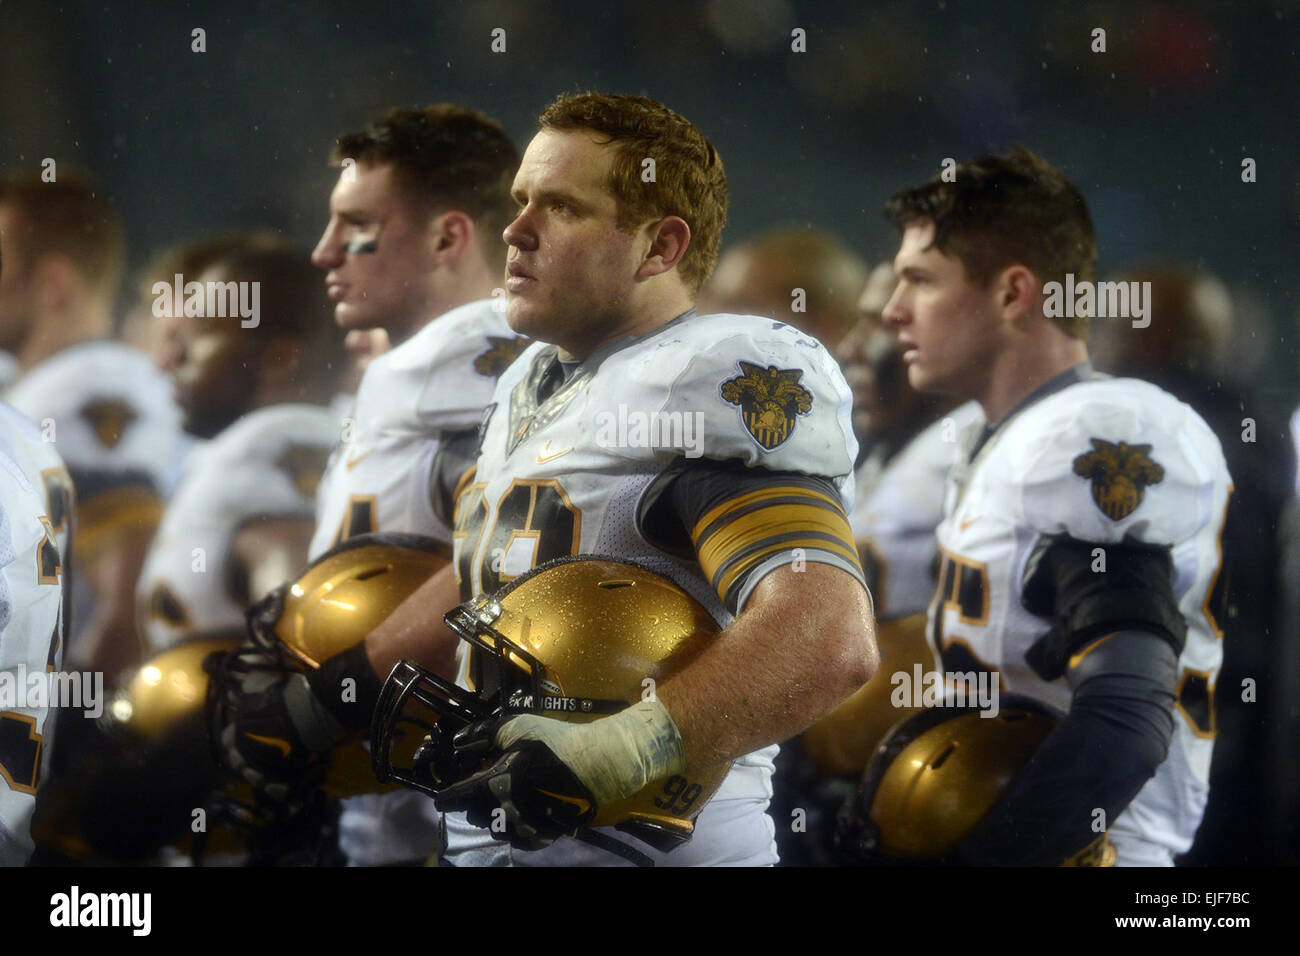 Rancho Cucamonga, Calif., native Robert Kough, front, stands with his team after the 114th Army-Navy game at the - Stock Image